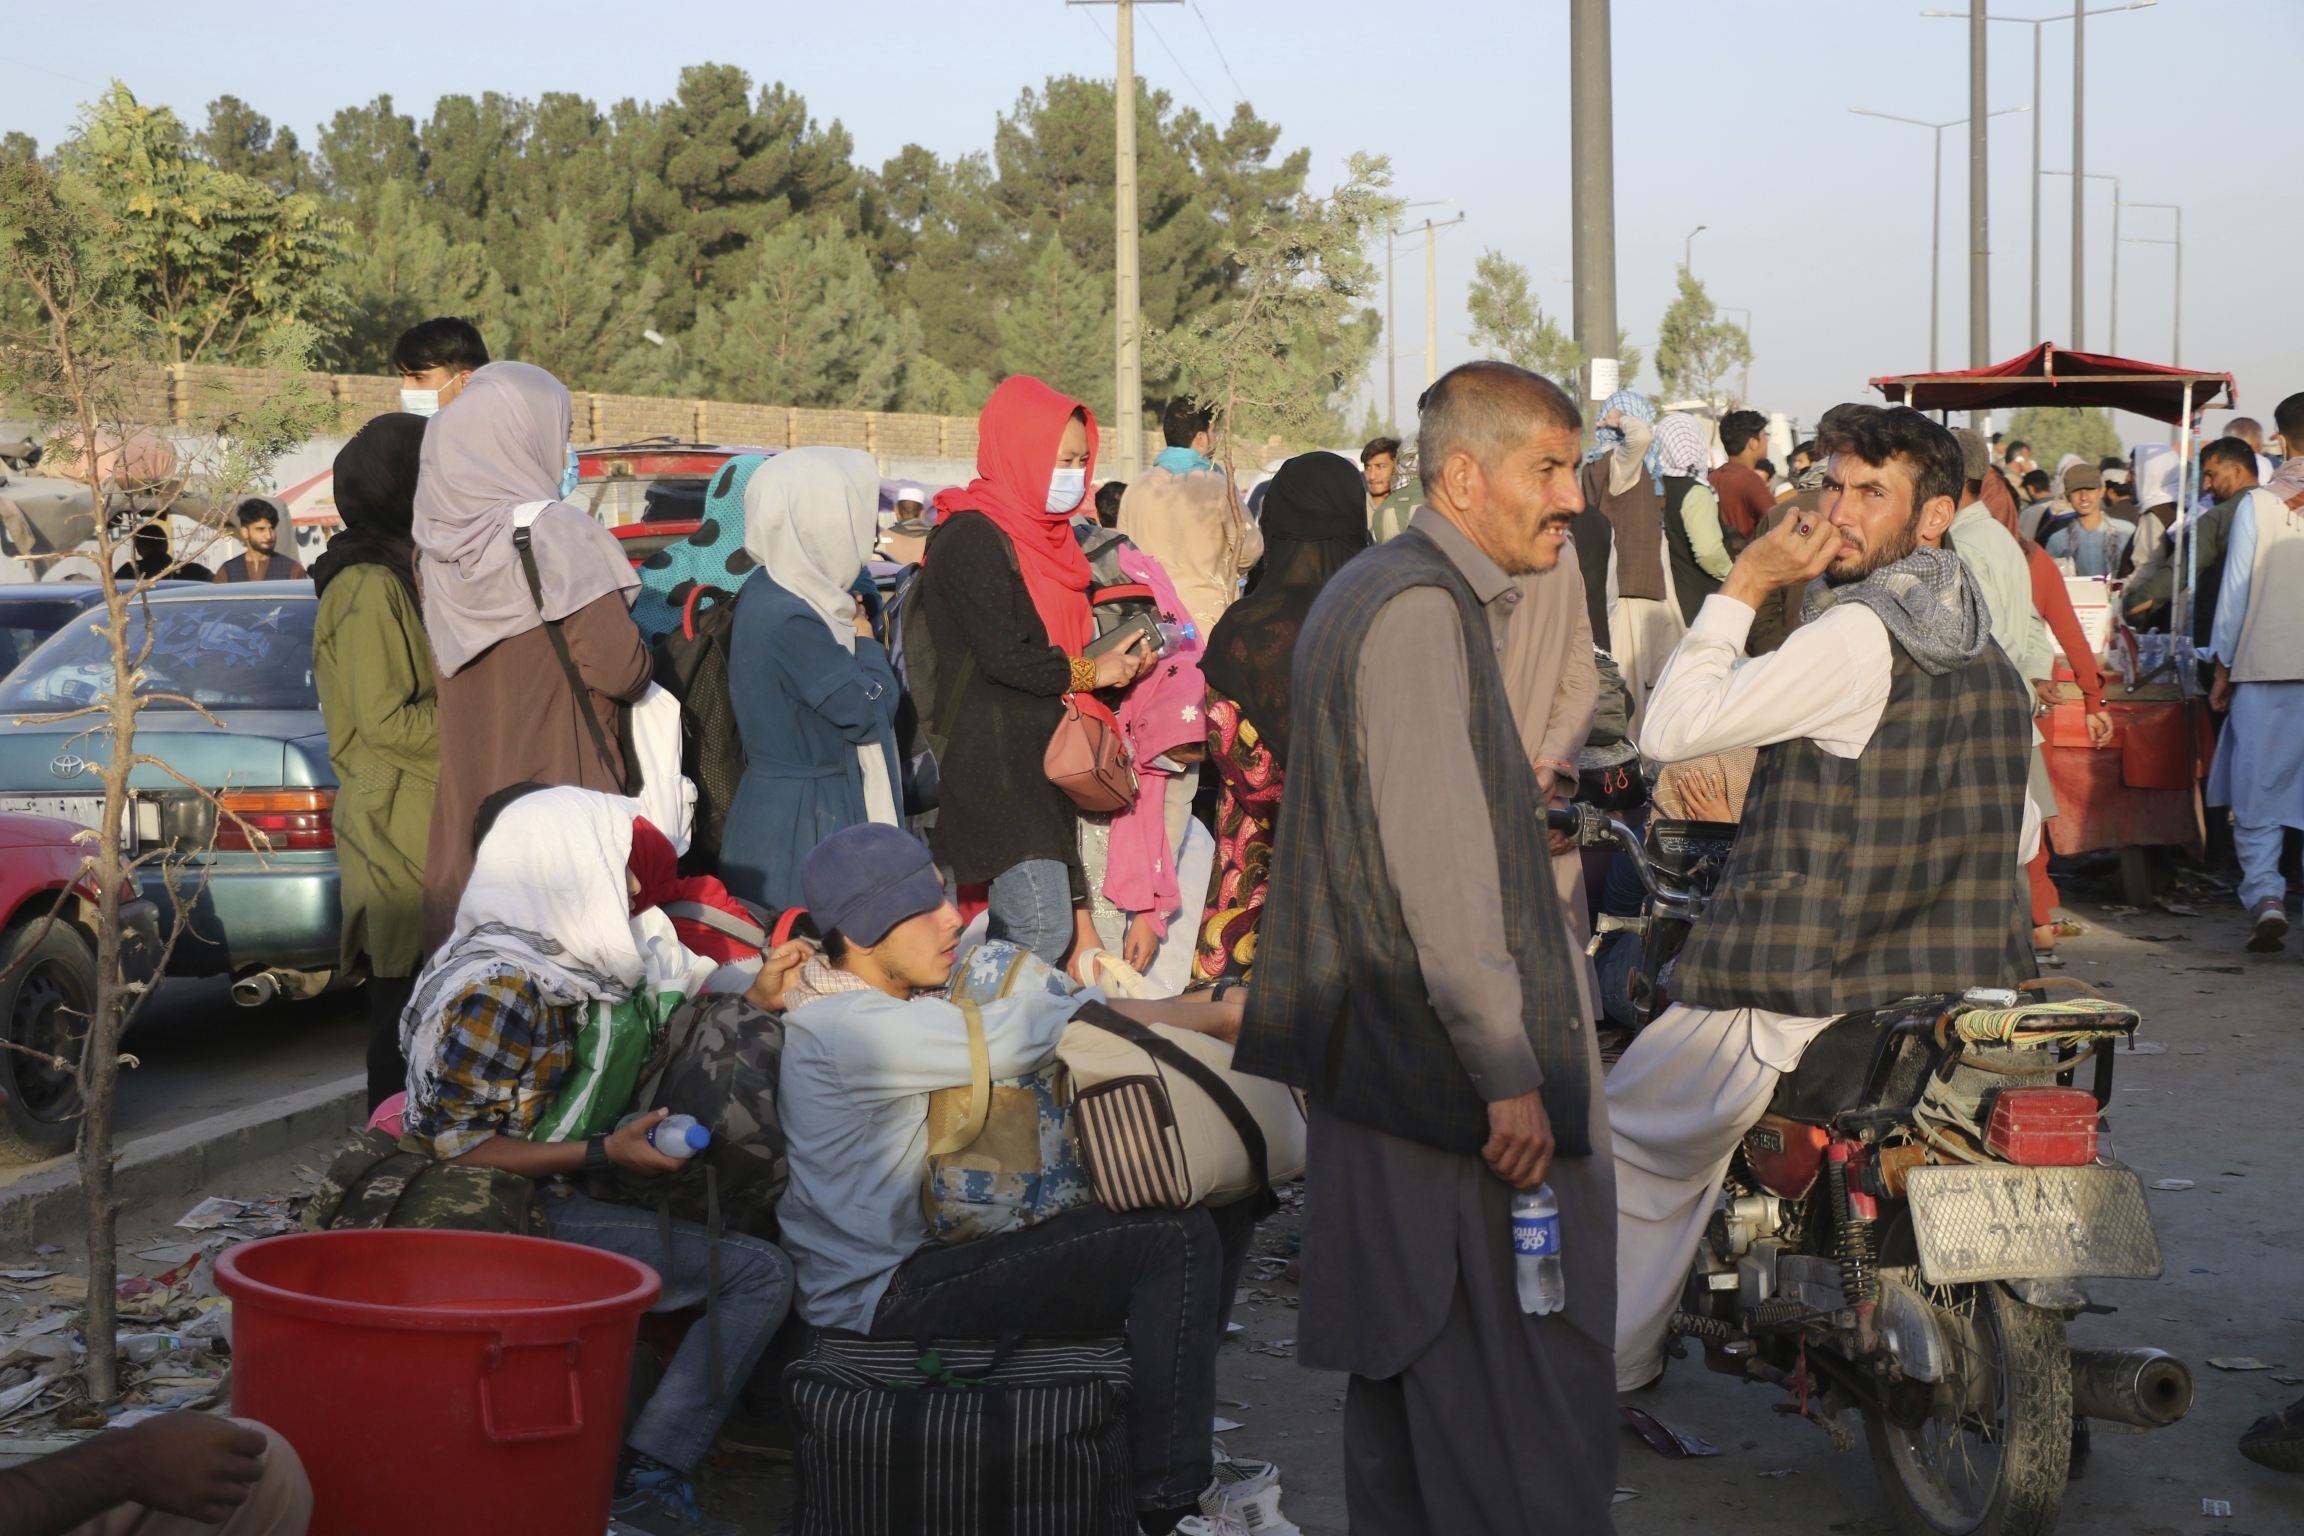 Hundreds of people gather near an evacuation control checkpoint during ongoing evacuations at Hamid Karzai International Airport, in Kabul.